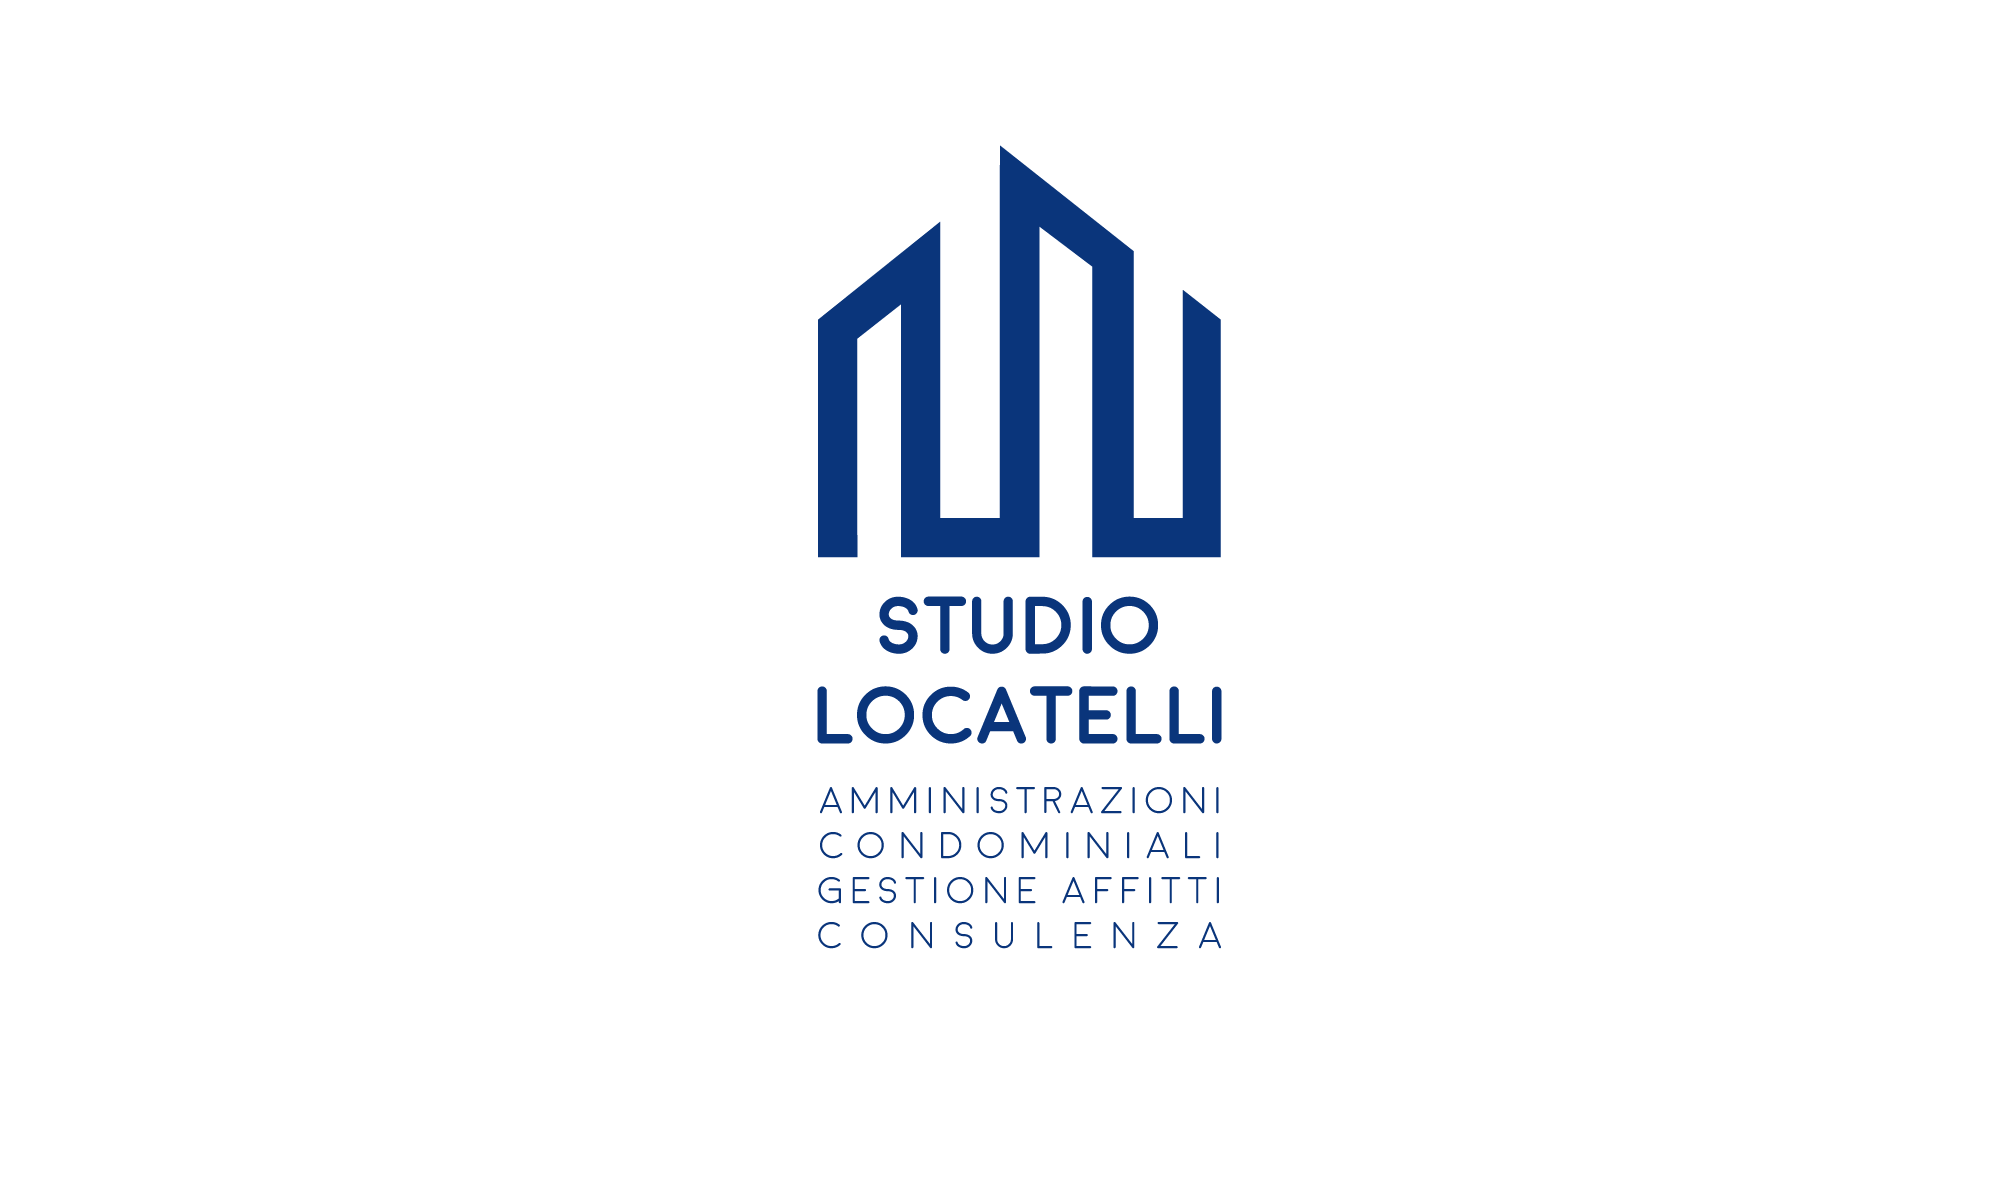 Studio Locatelli